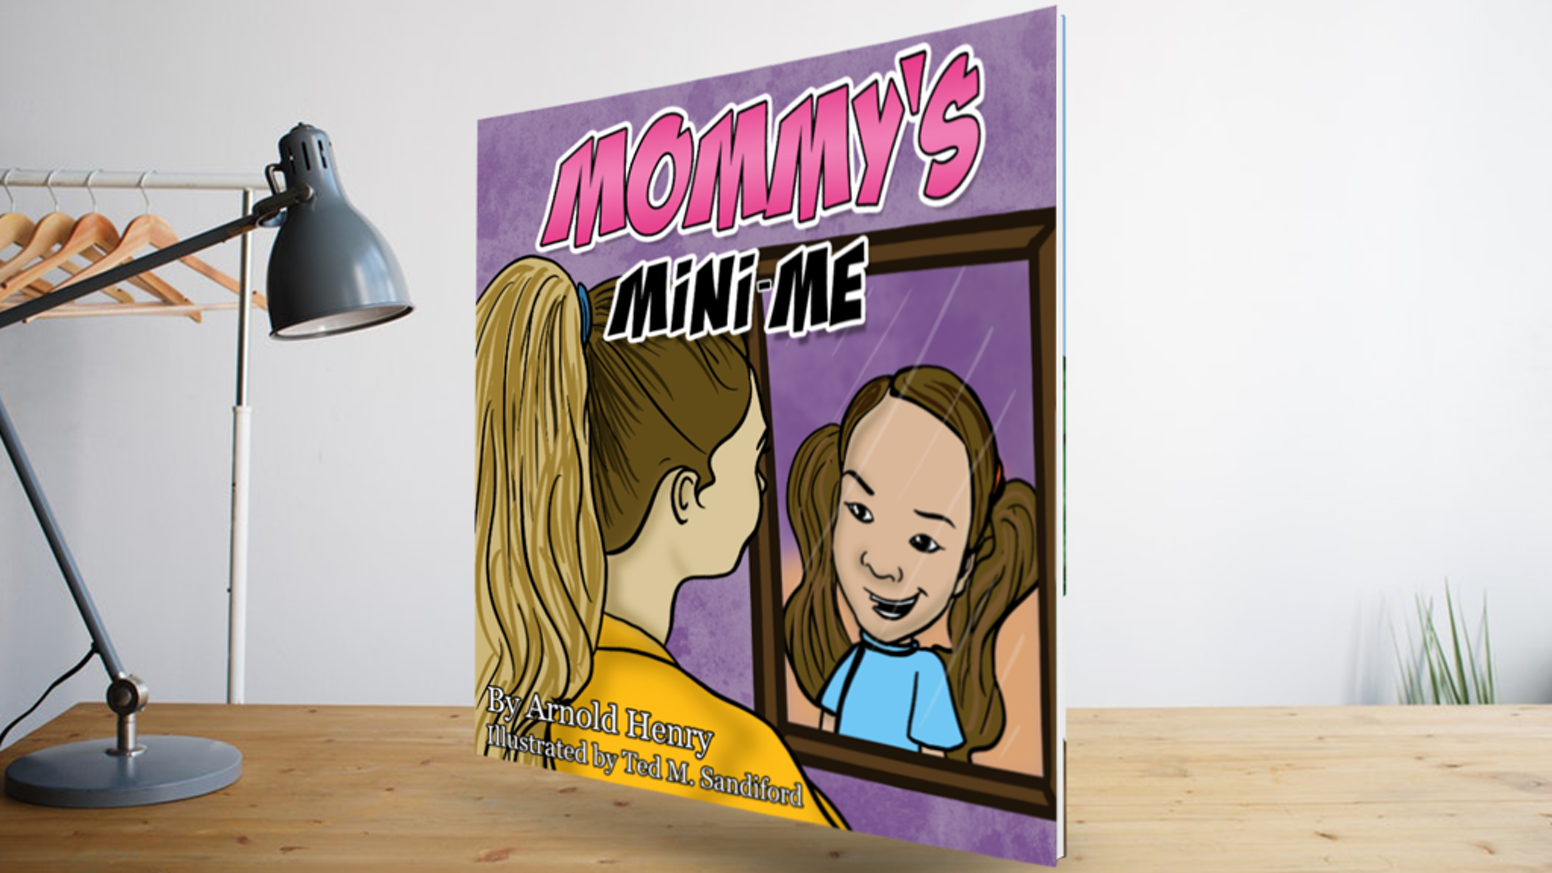 Mommy's Mini-Me is an inspiring children's book about a young girl who becomes empowered by her mother's wisdom.